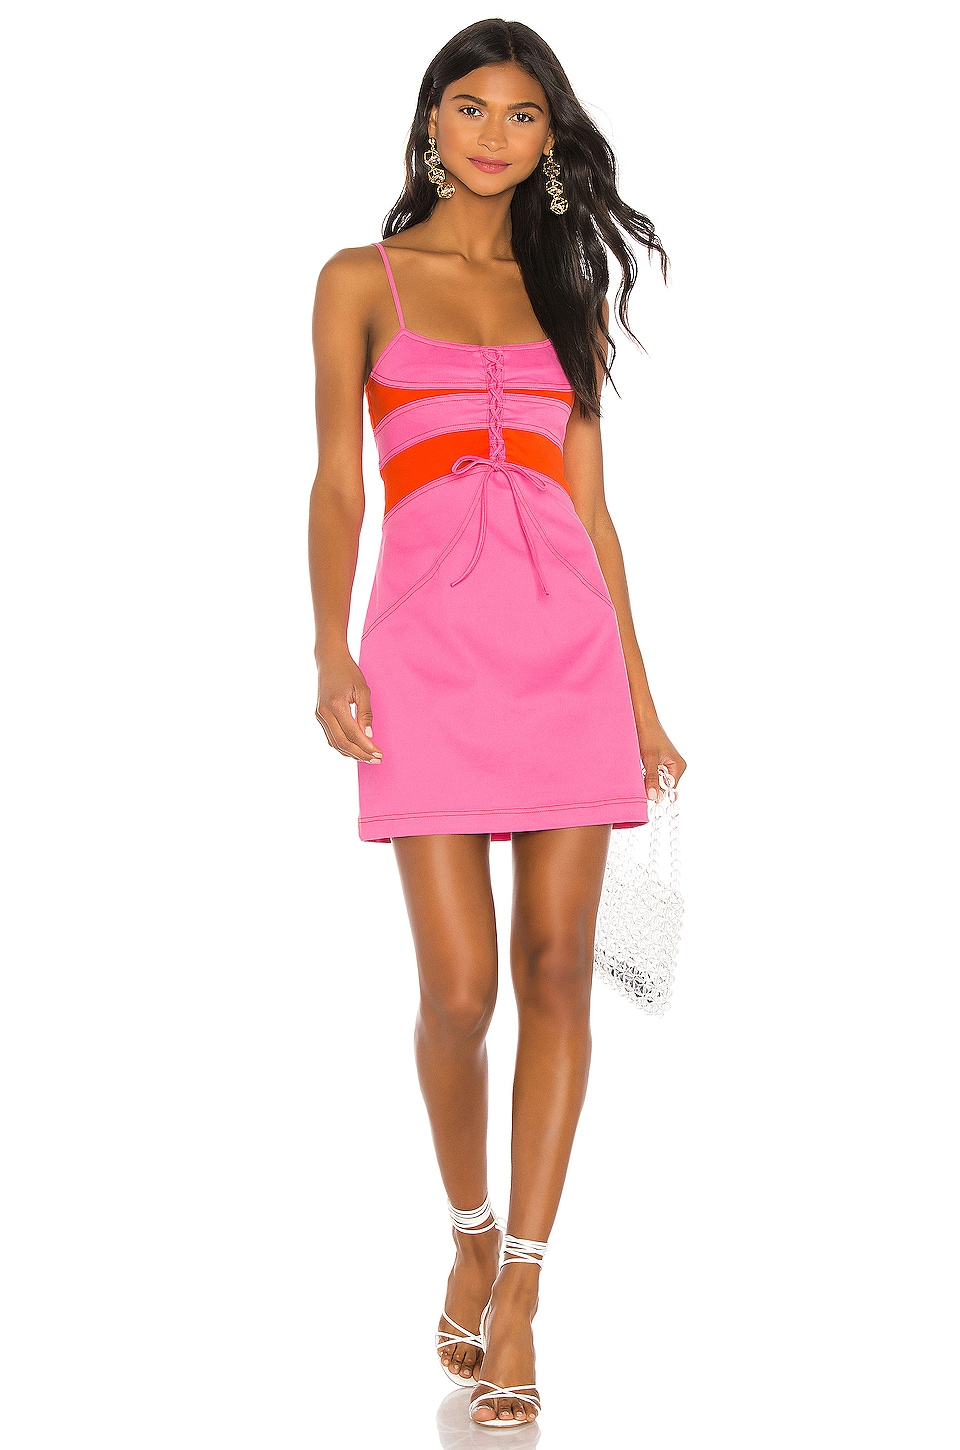 The East Order Ottie Mini Dress in Pink